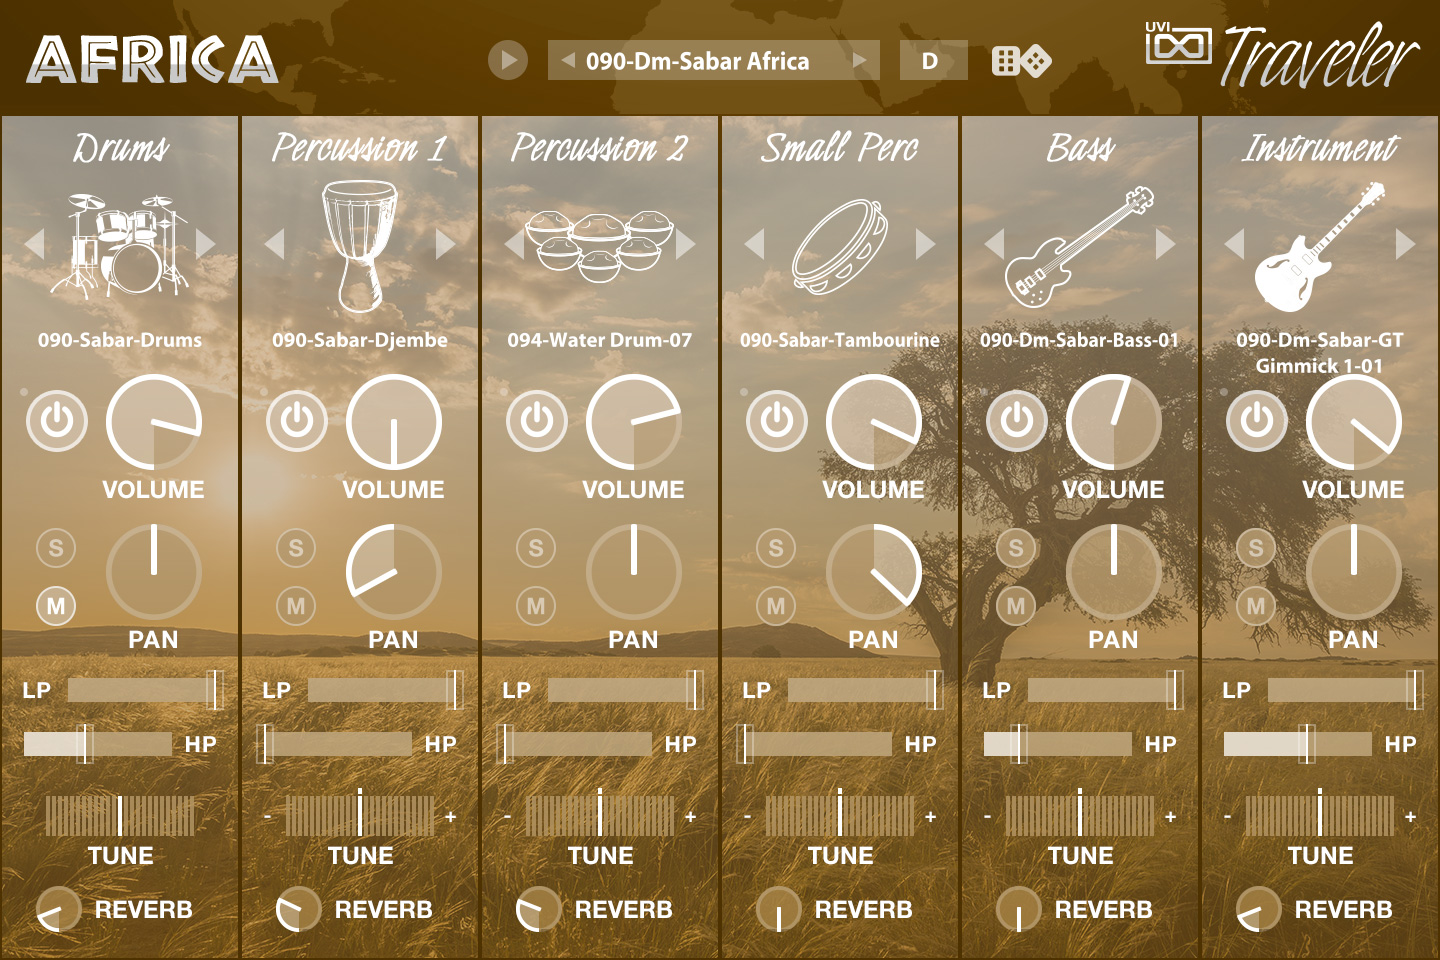 UVI World Suite | Traveler Africa UI